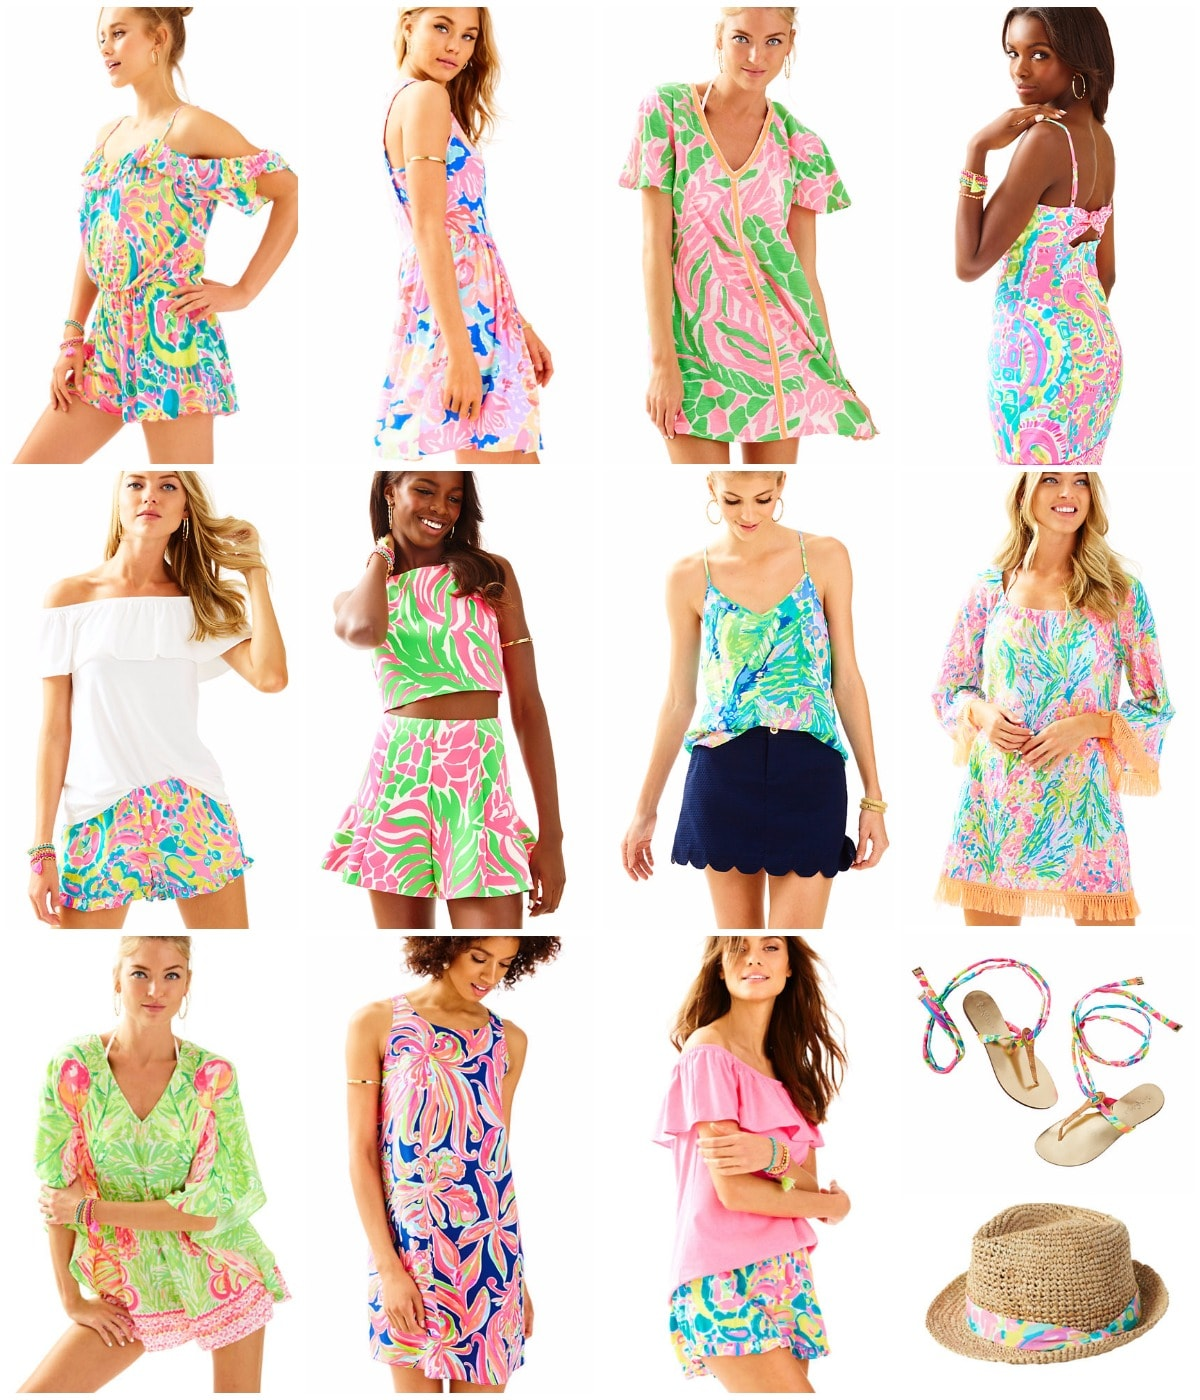 Lilly Pulitzer Spring Break Sunseekers Collection | Spring New Releases | Preppy Fashion | Orlando, Florida, Beauty and Fashion Blogger Ashley Brooke Nicholas